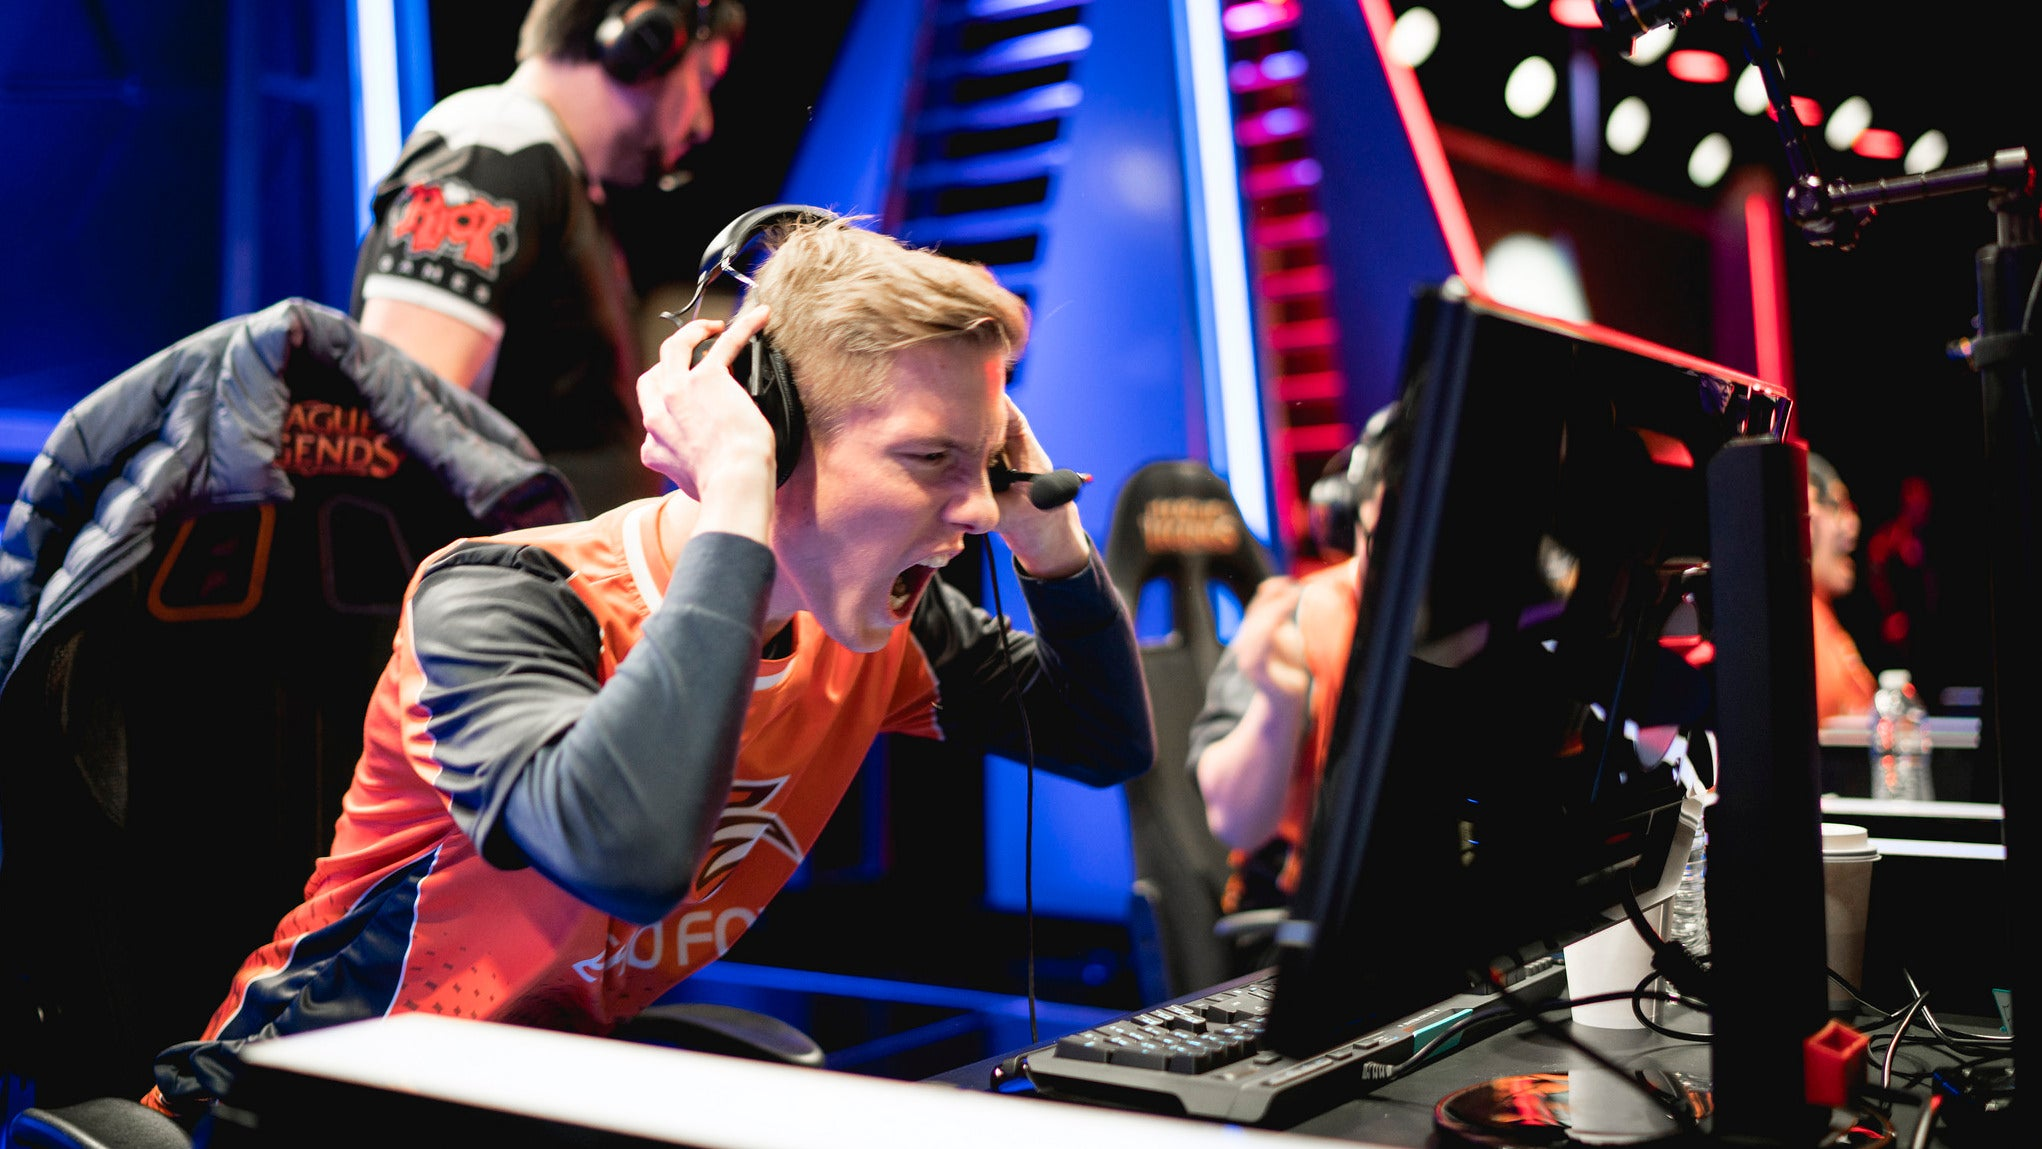 Last Night's Record-Setting League Of Legends Match Lowered The Bar